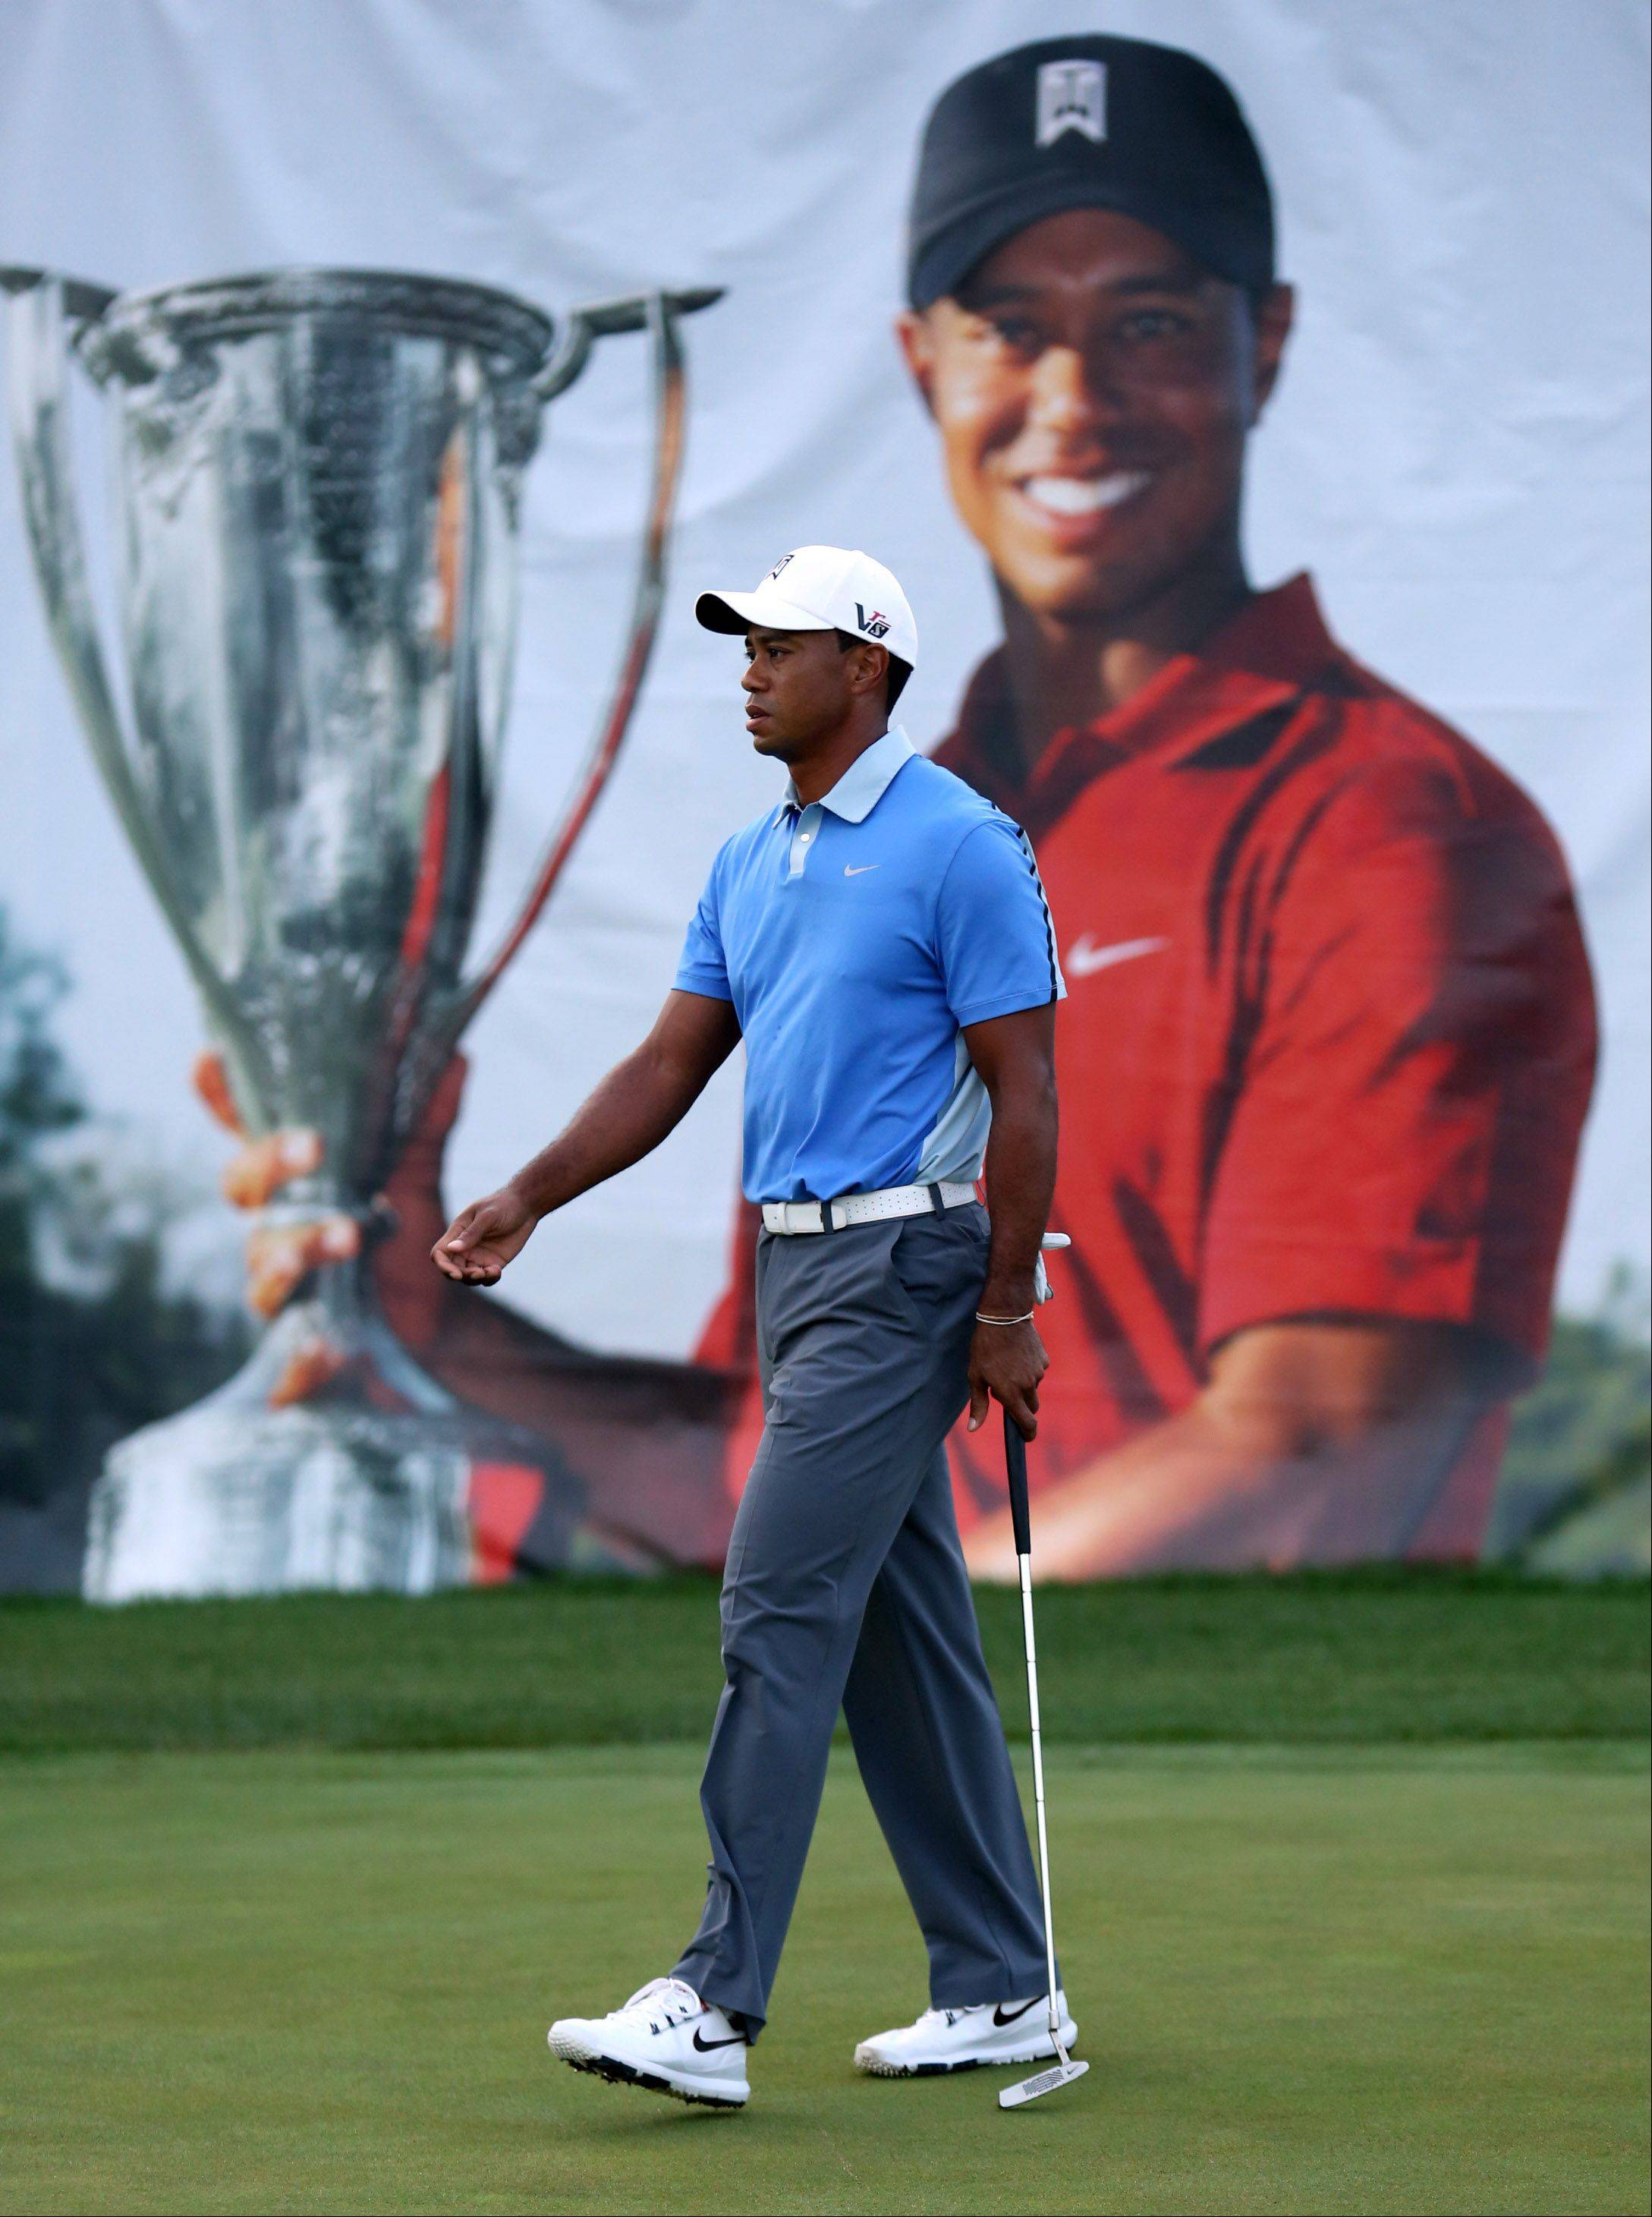 Tiger Woods walks past the practice driving range before taking part in the Gardner Heidrick Pro-Am tournament at Conway Farms Golf Club in Lake Forest on Wednesday. The top 70 players in the world tee it up Thursday for the first round of the BMW Championship.